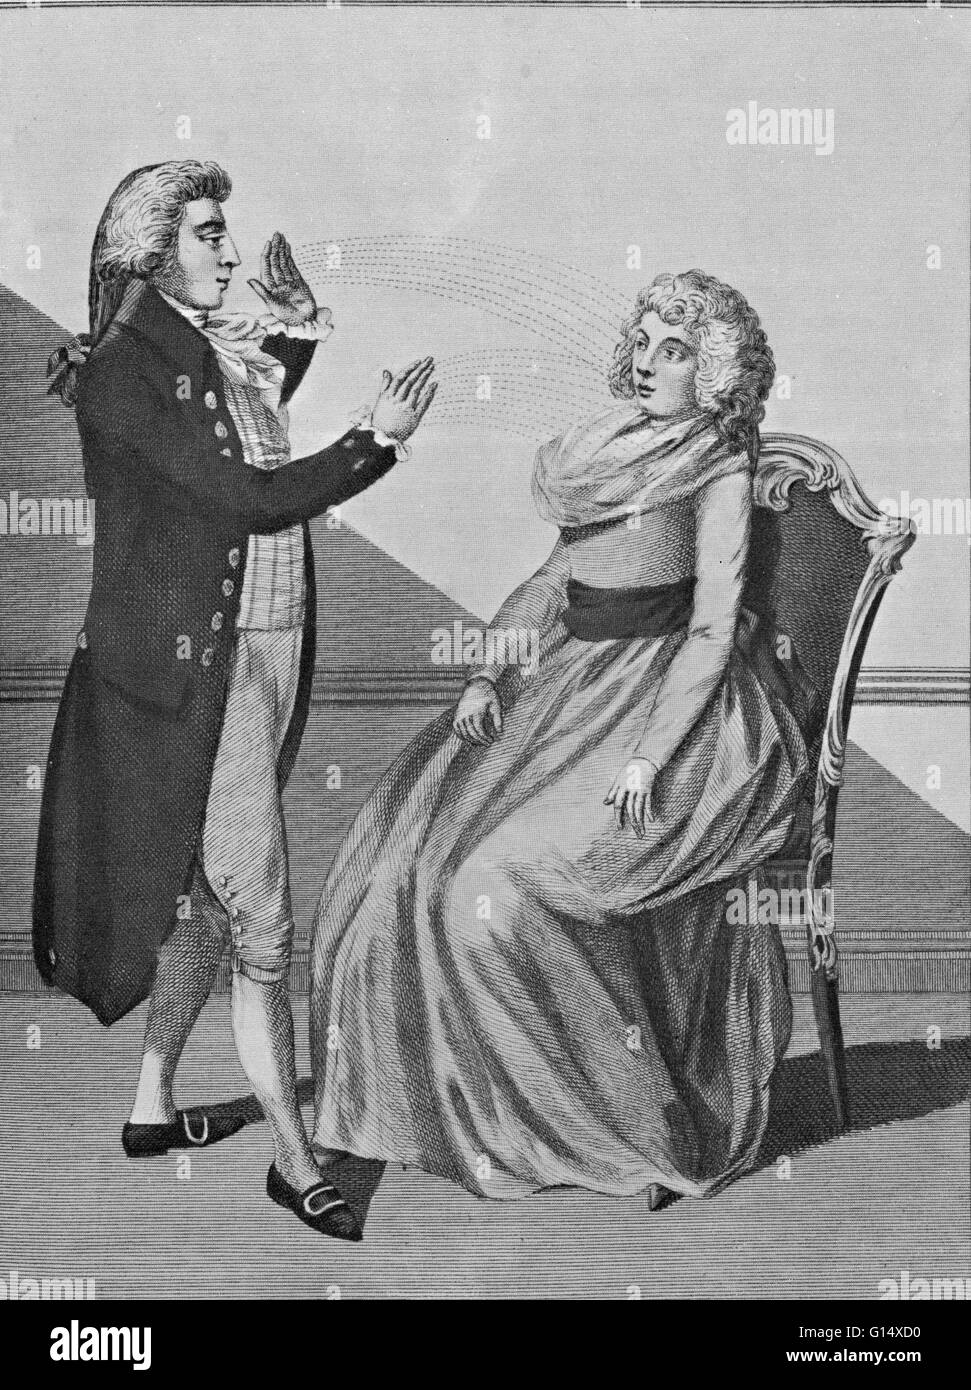 Mesmer hypnotizing a patient. Franz Anton Mesmer (1734-1815) was a German physician with an interest in astronomy, - Stock Image